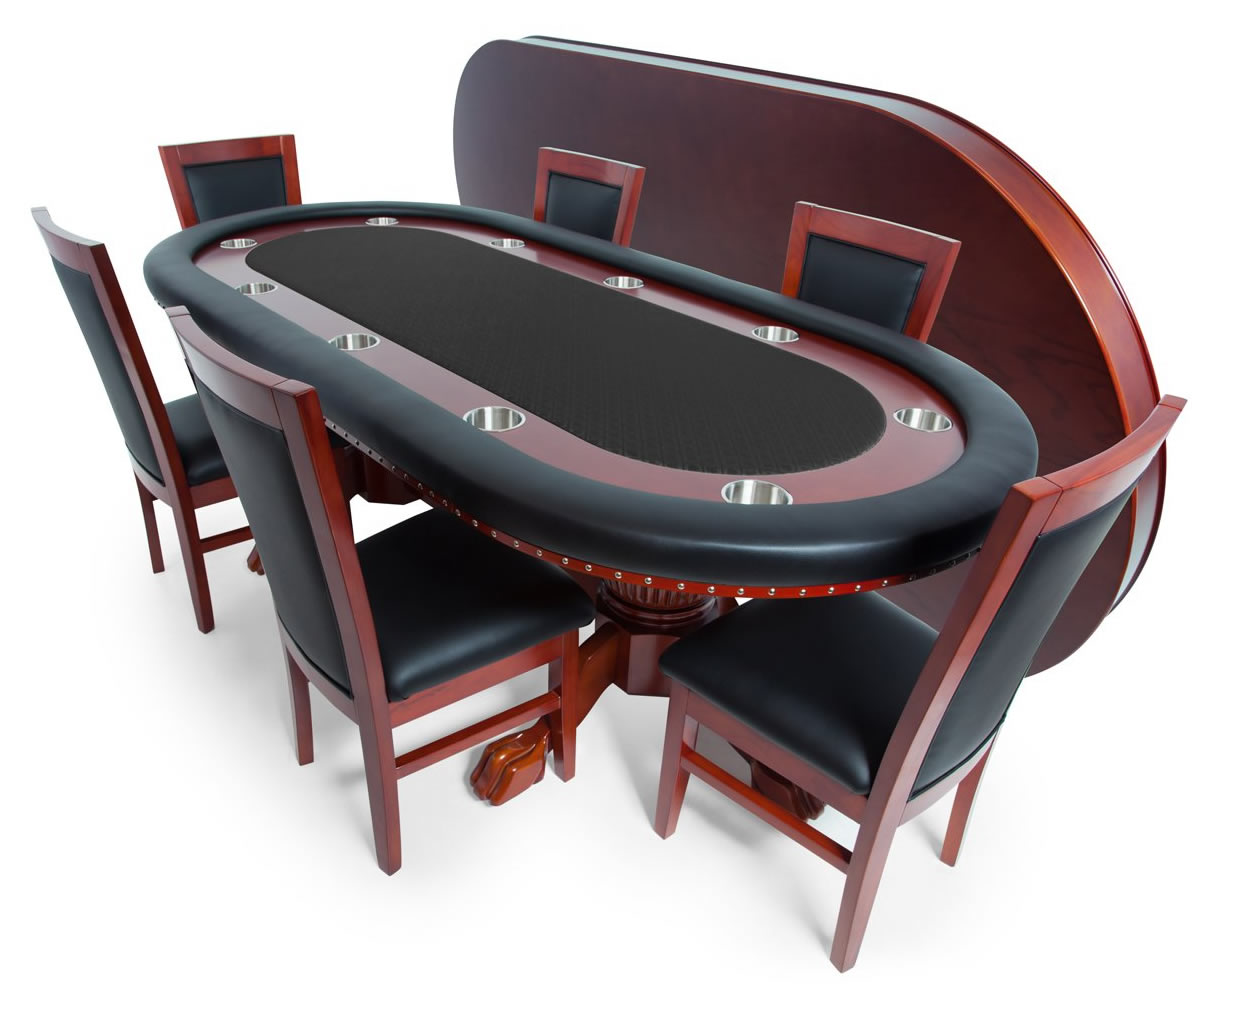 Rockwell Poker table best poker table for your home bar